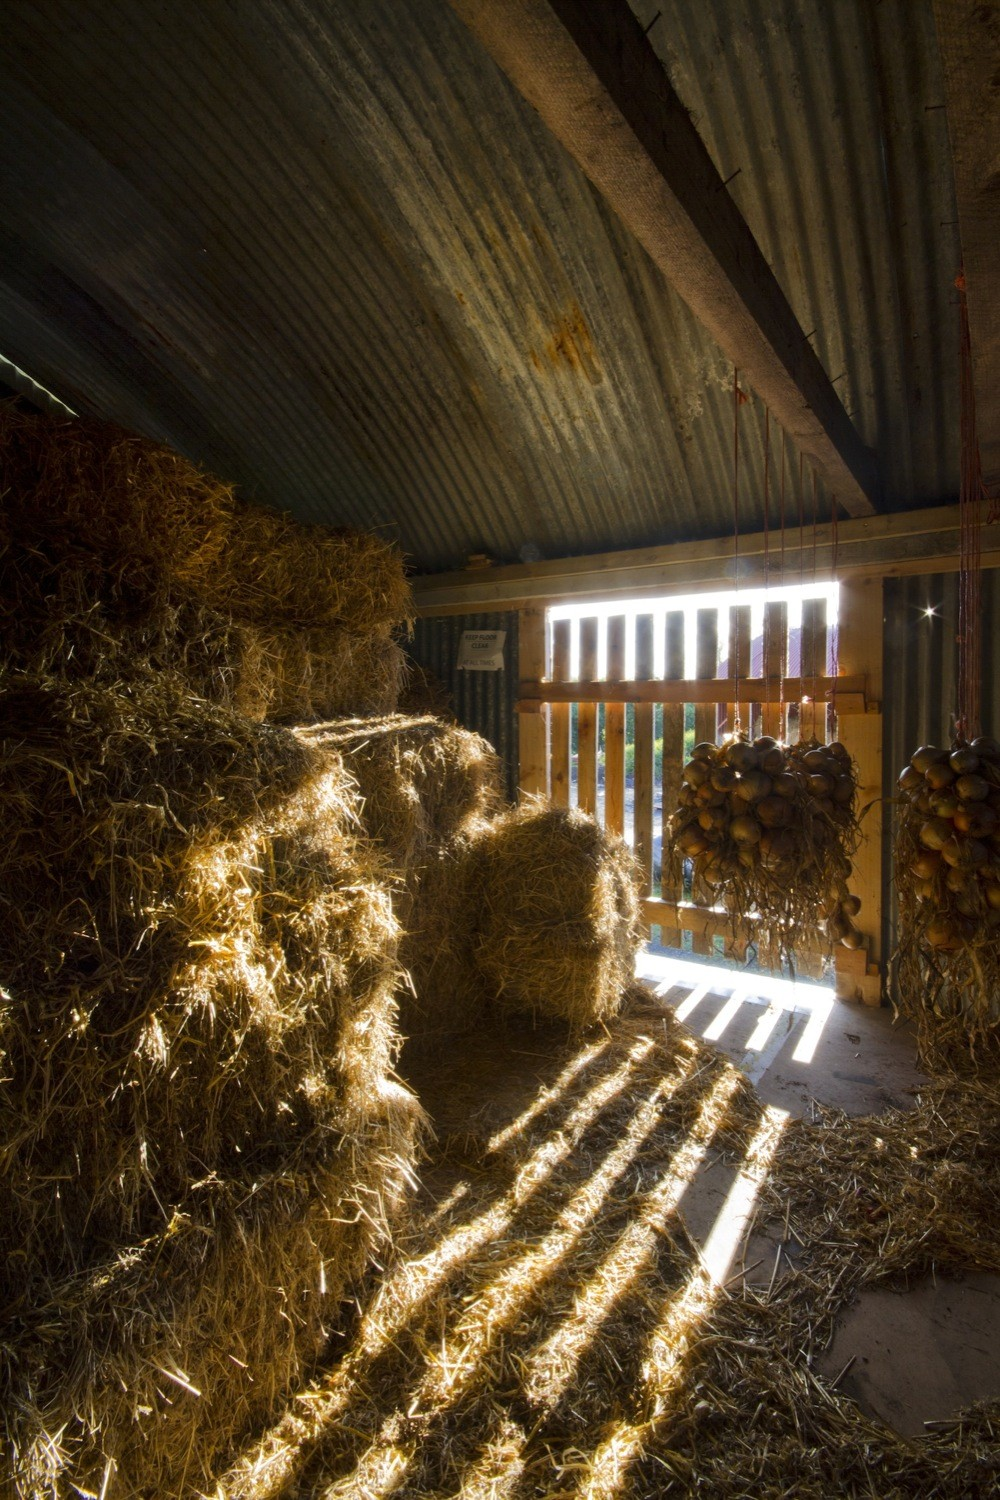 Cowshed__design_and_build_workshops_led_by_Cowshed_Collective._Image_by_Ste_Murray_(2).jpg